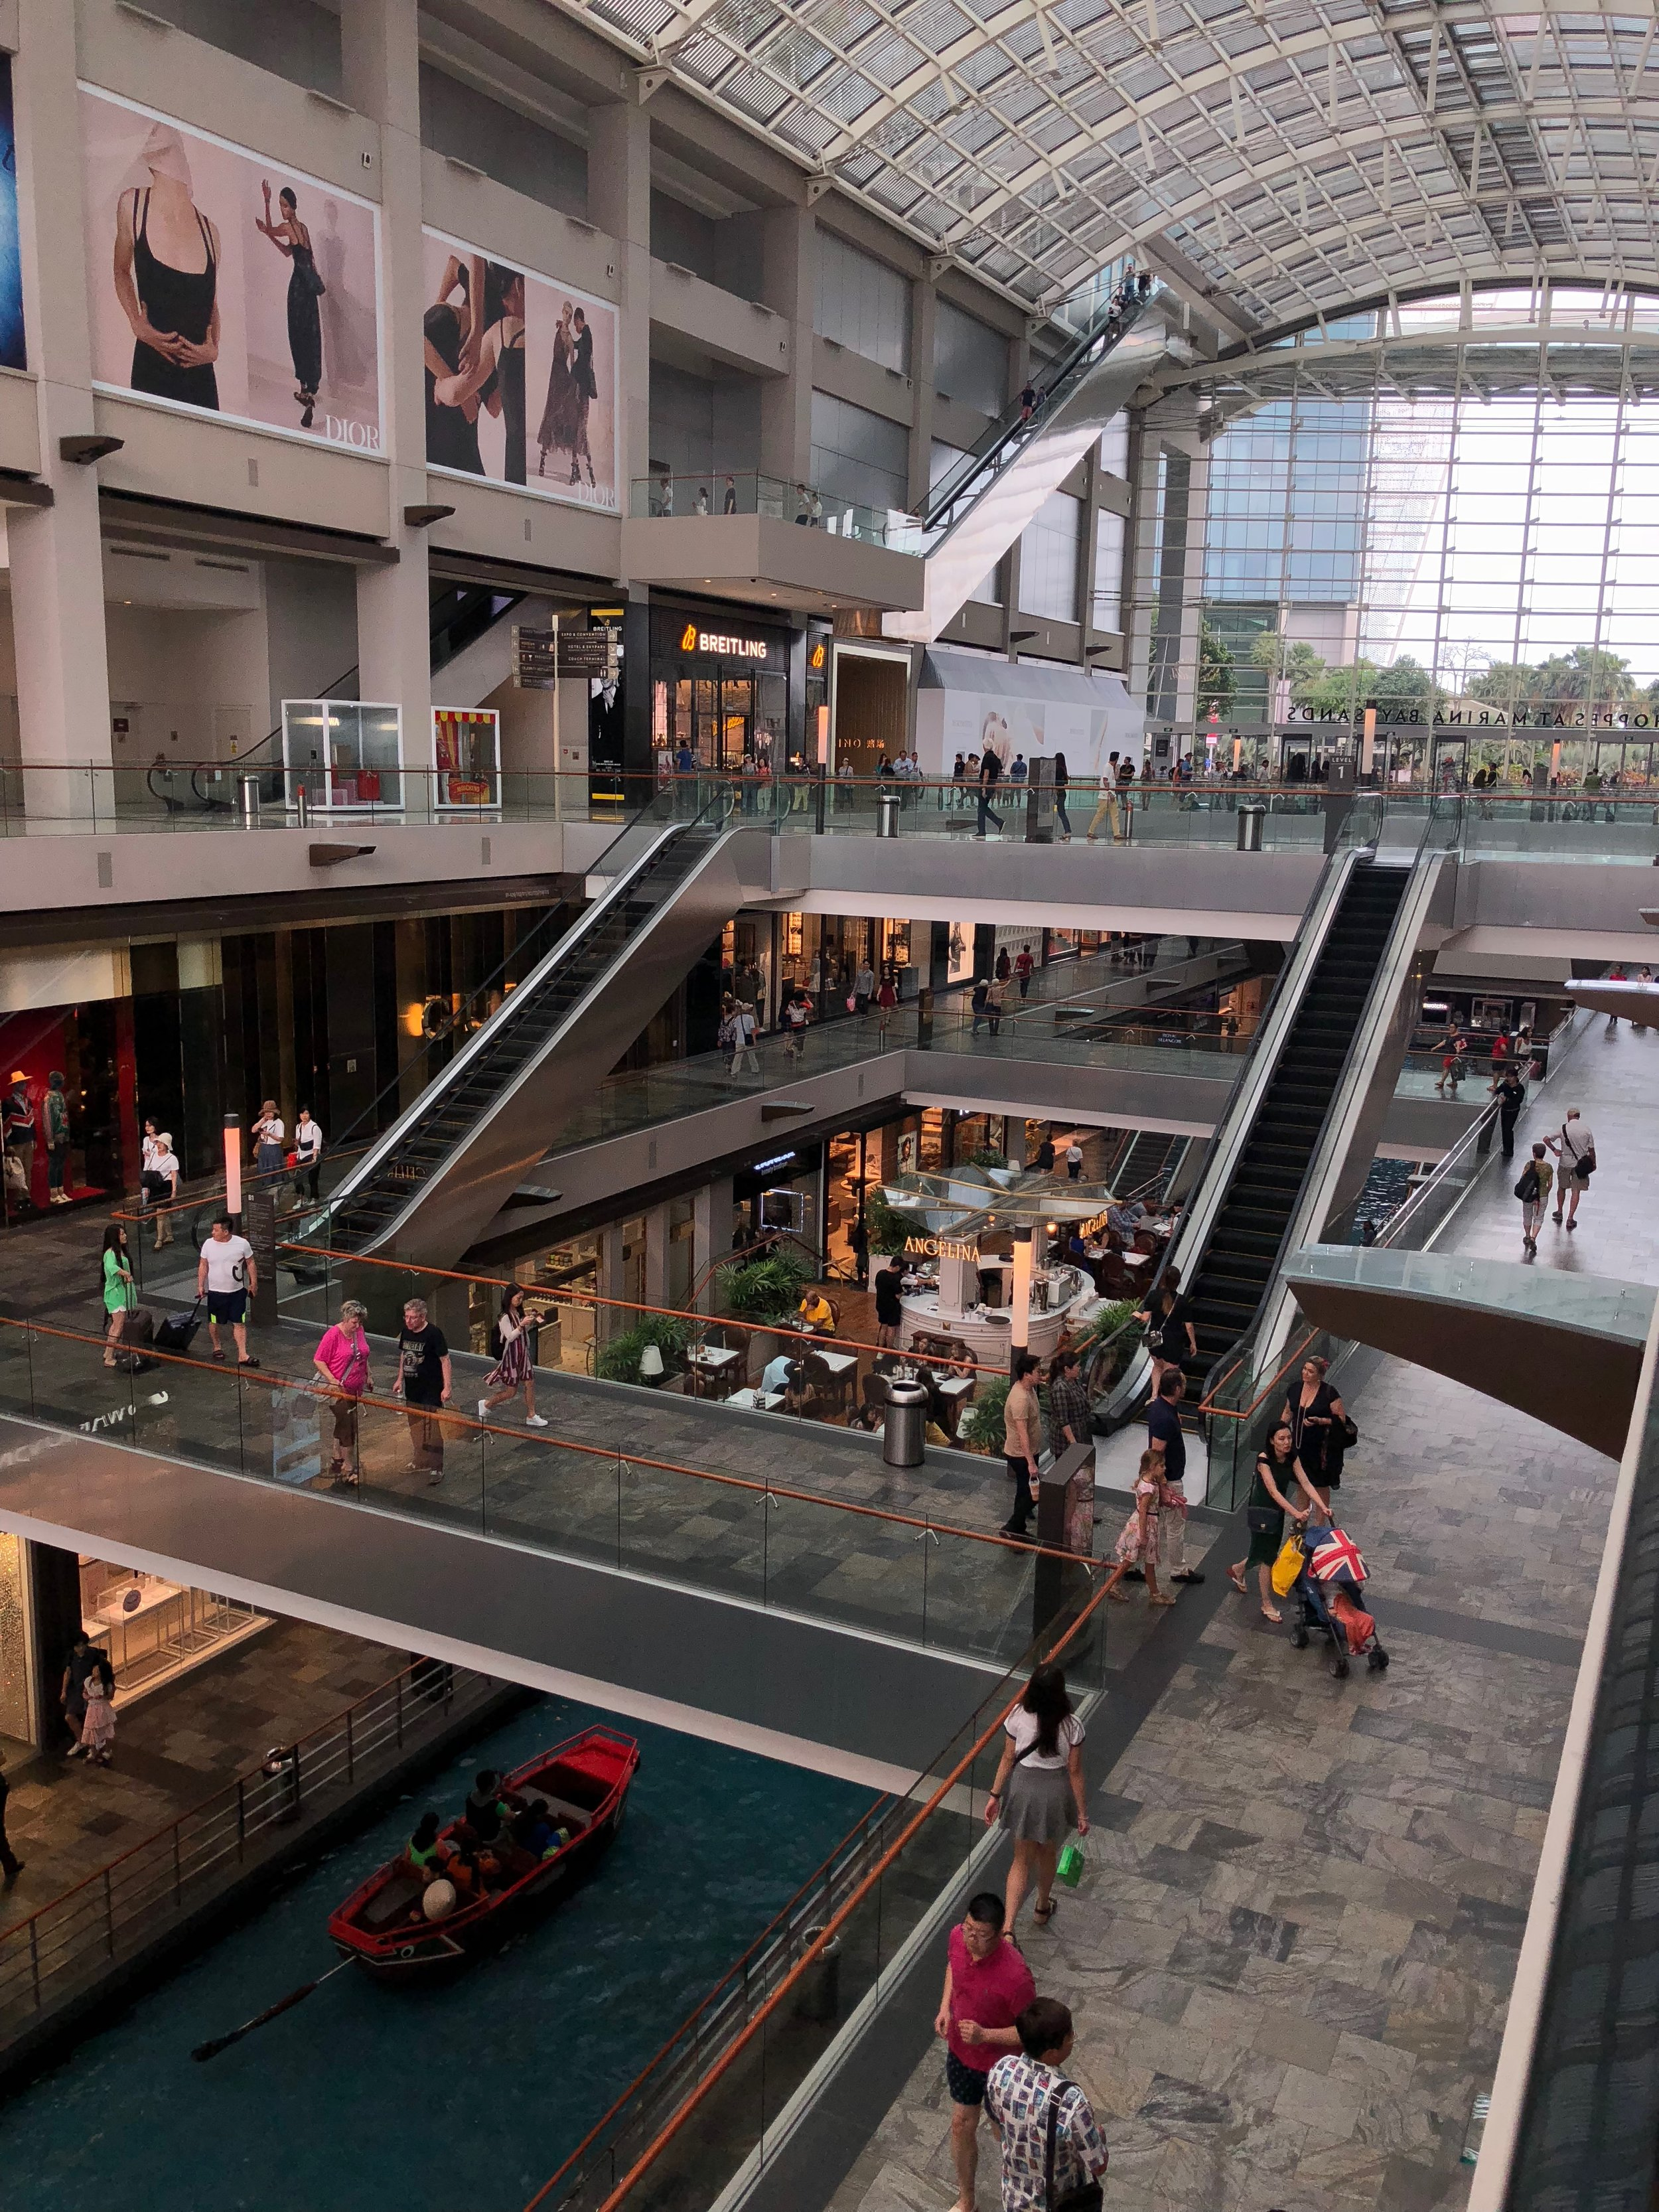 """Inside The Shoppes at Marina Bay Sands. If you look towards the bottom, there is a """"canal"""" that you can ride gondolas in. I could get a break from the humidity inside the The Shoppes, but the luxury stores did not seem budget traveler friendly."""